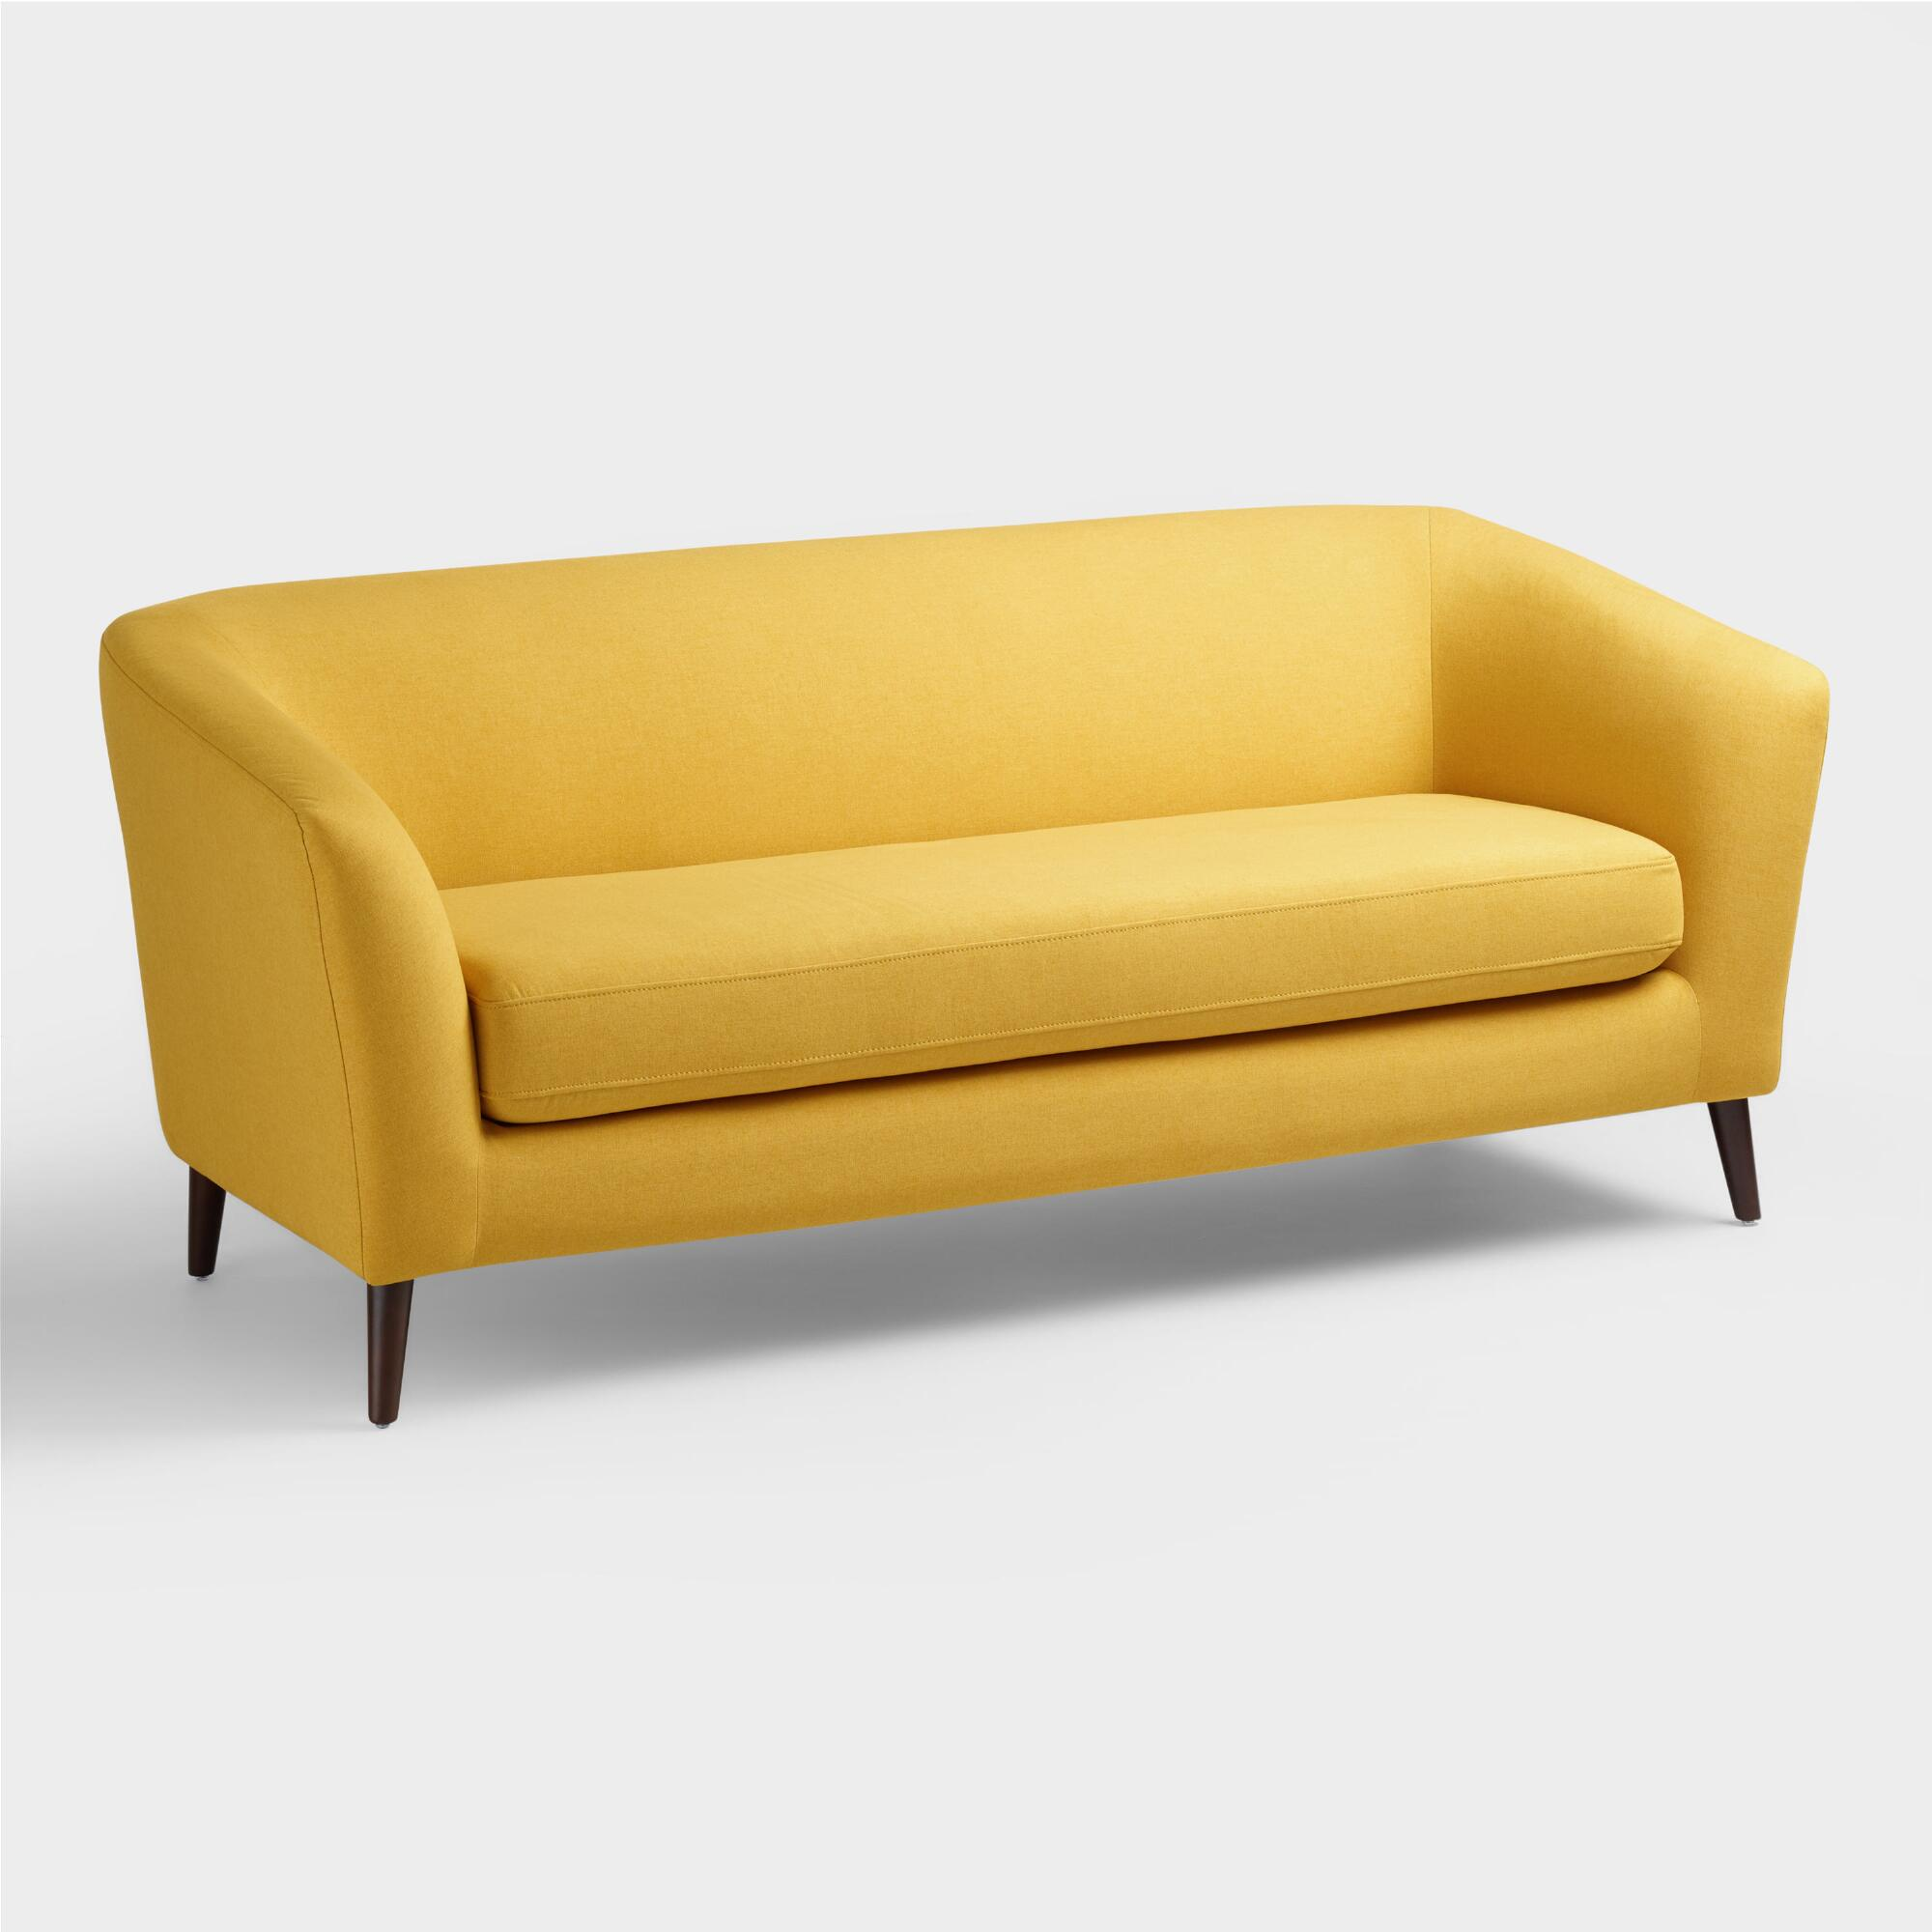 Yellow sofa bed yellow sofa bed bonners furniture thesofa for Furniture sofa bed